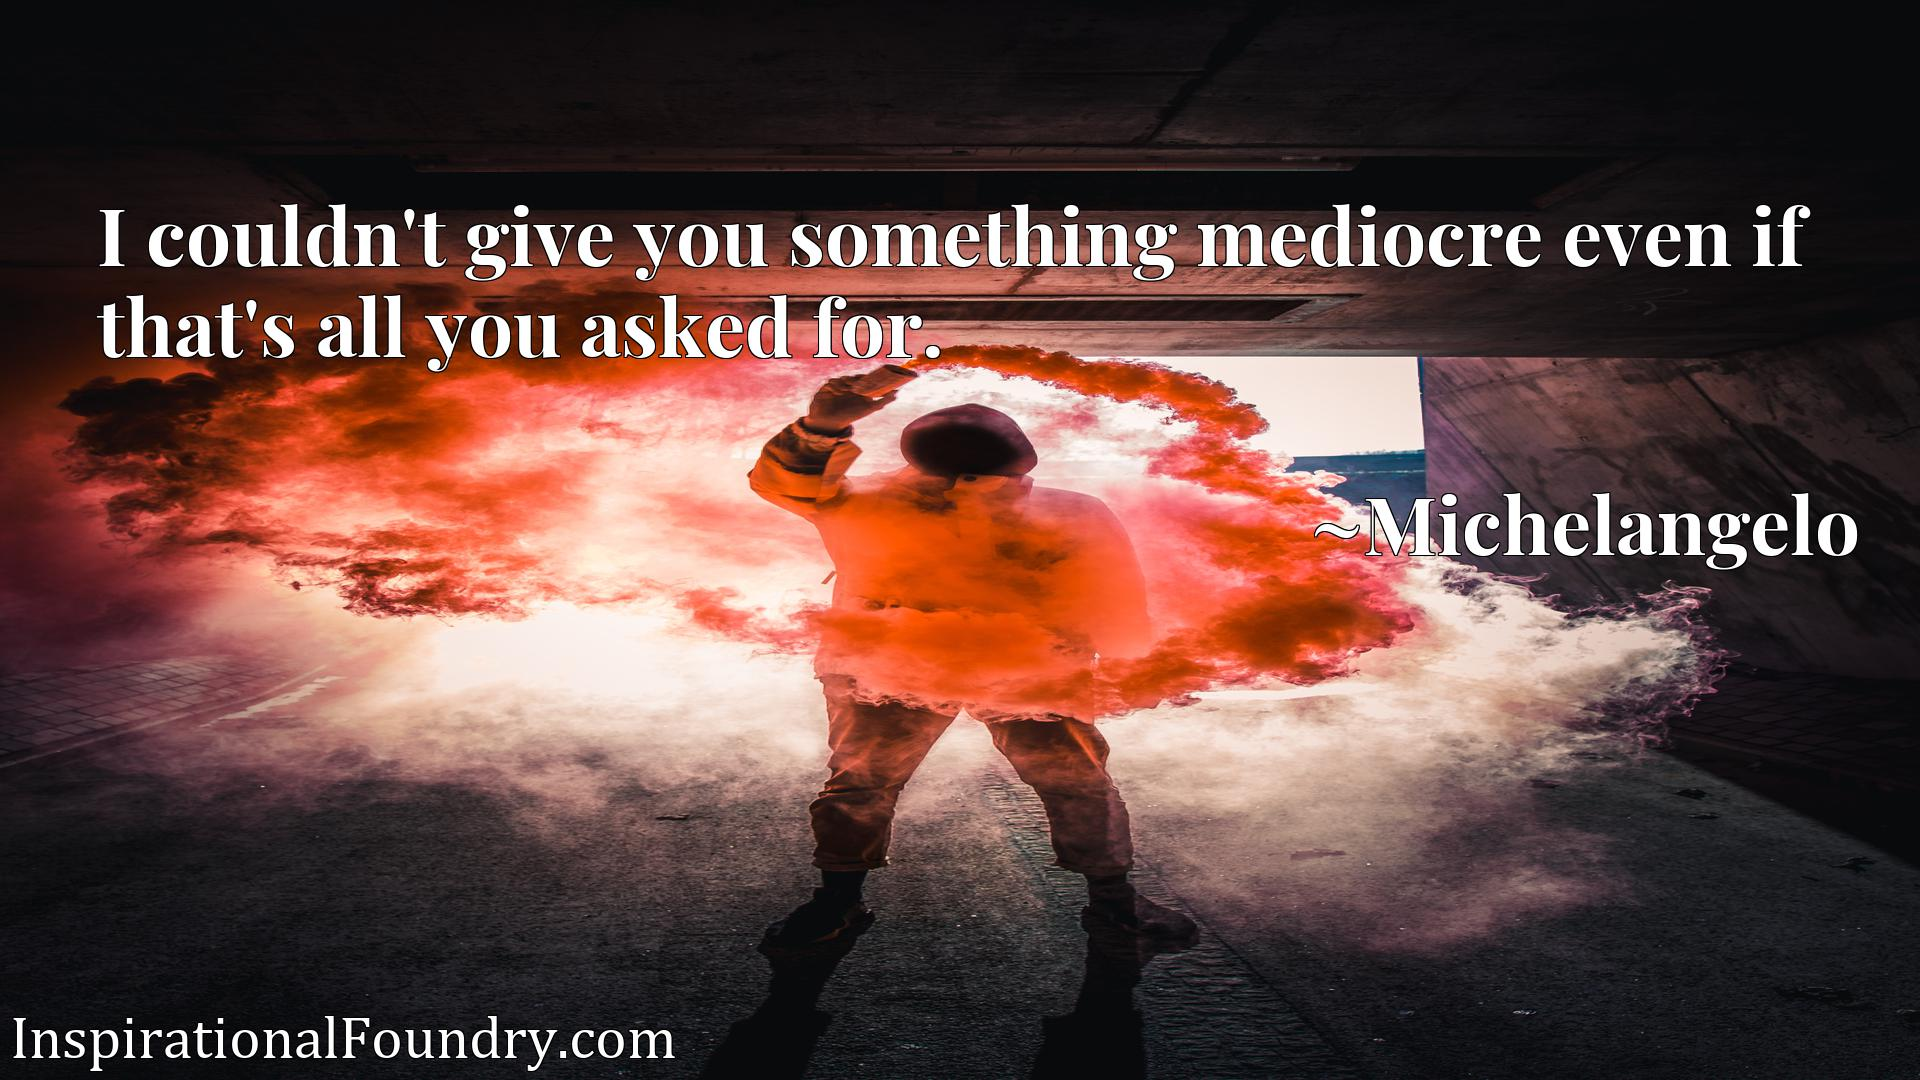 I couldn't give you something mediocre even if that's all you asked for.